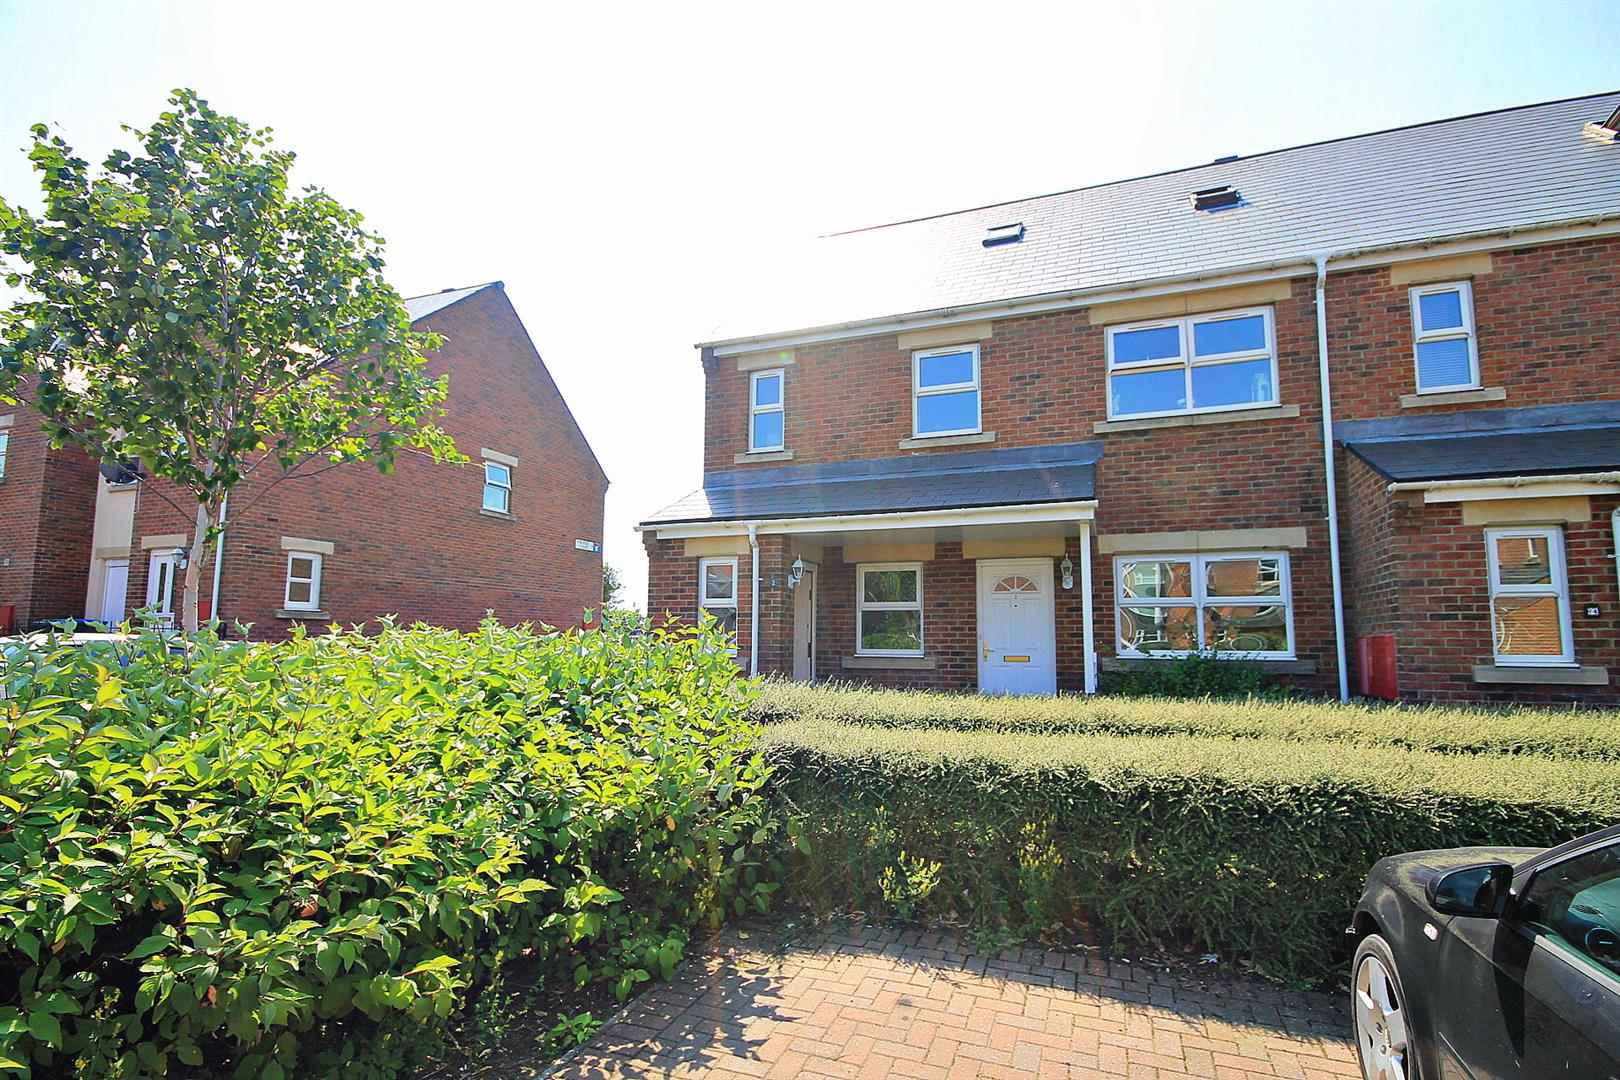 3 Bedrooms Maisonette Flat for sale in Bower Court, Coxhoe, Durham